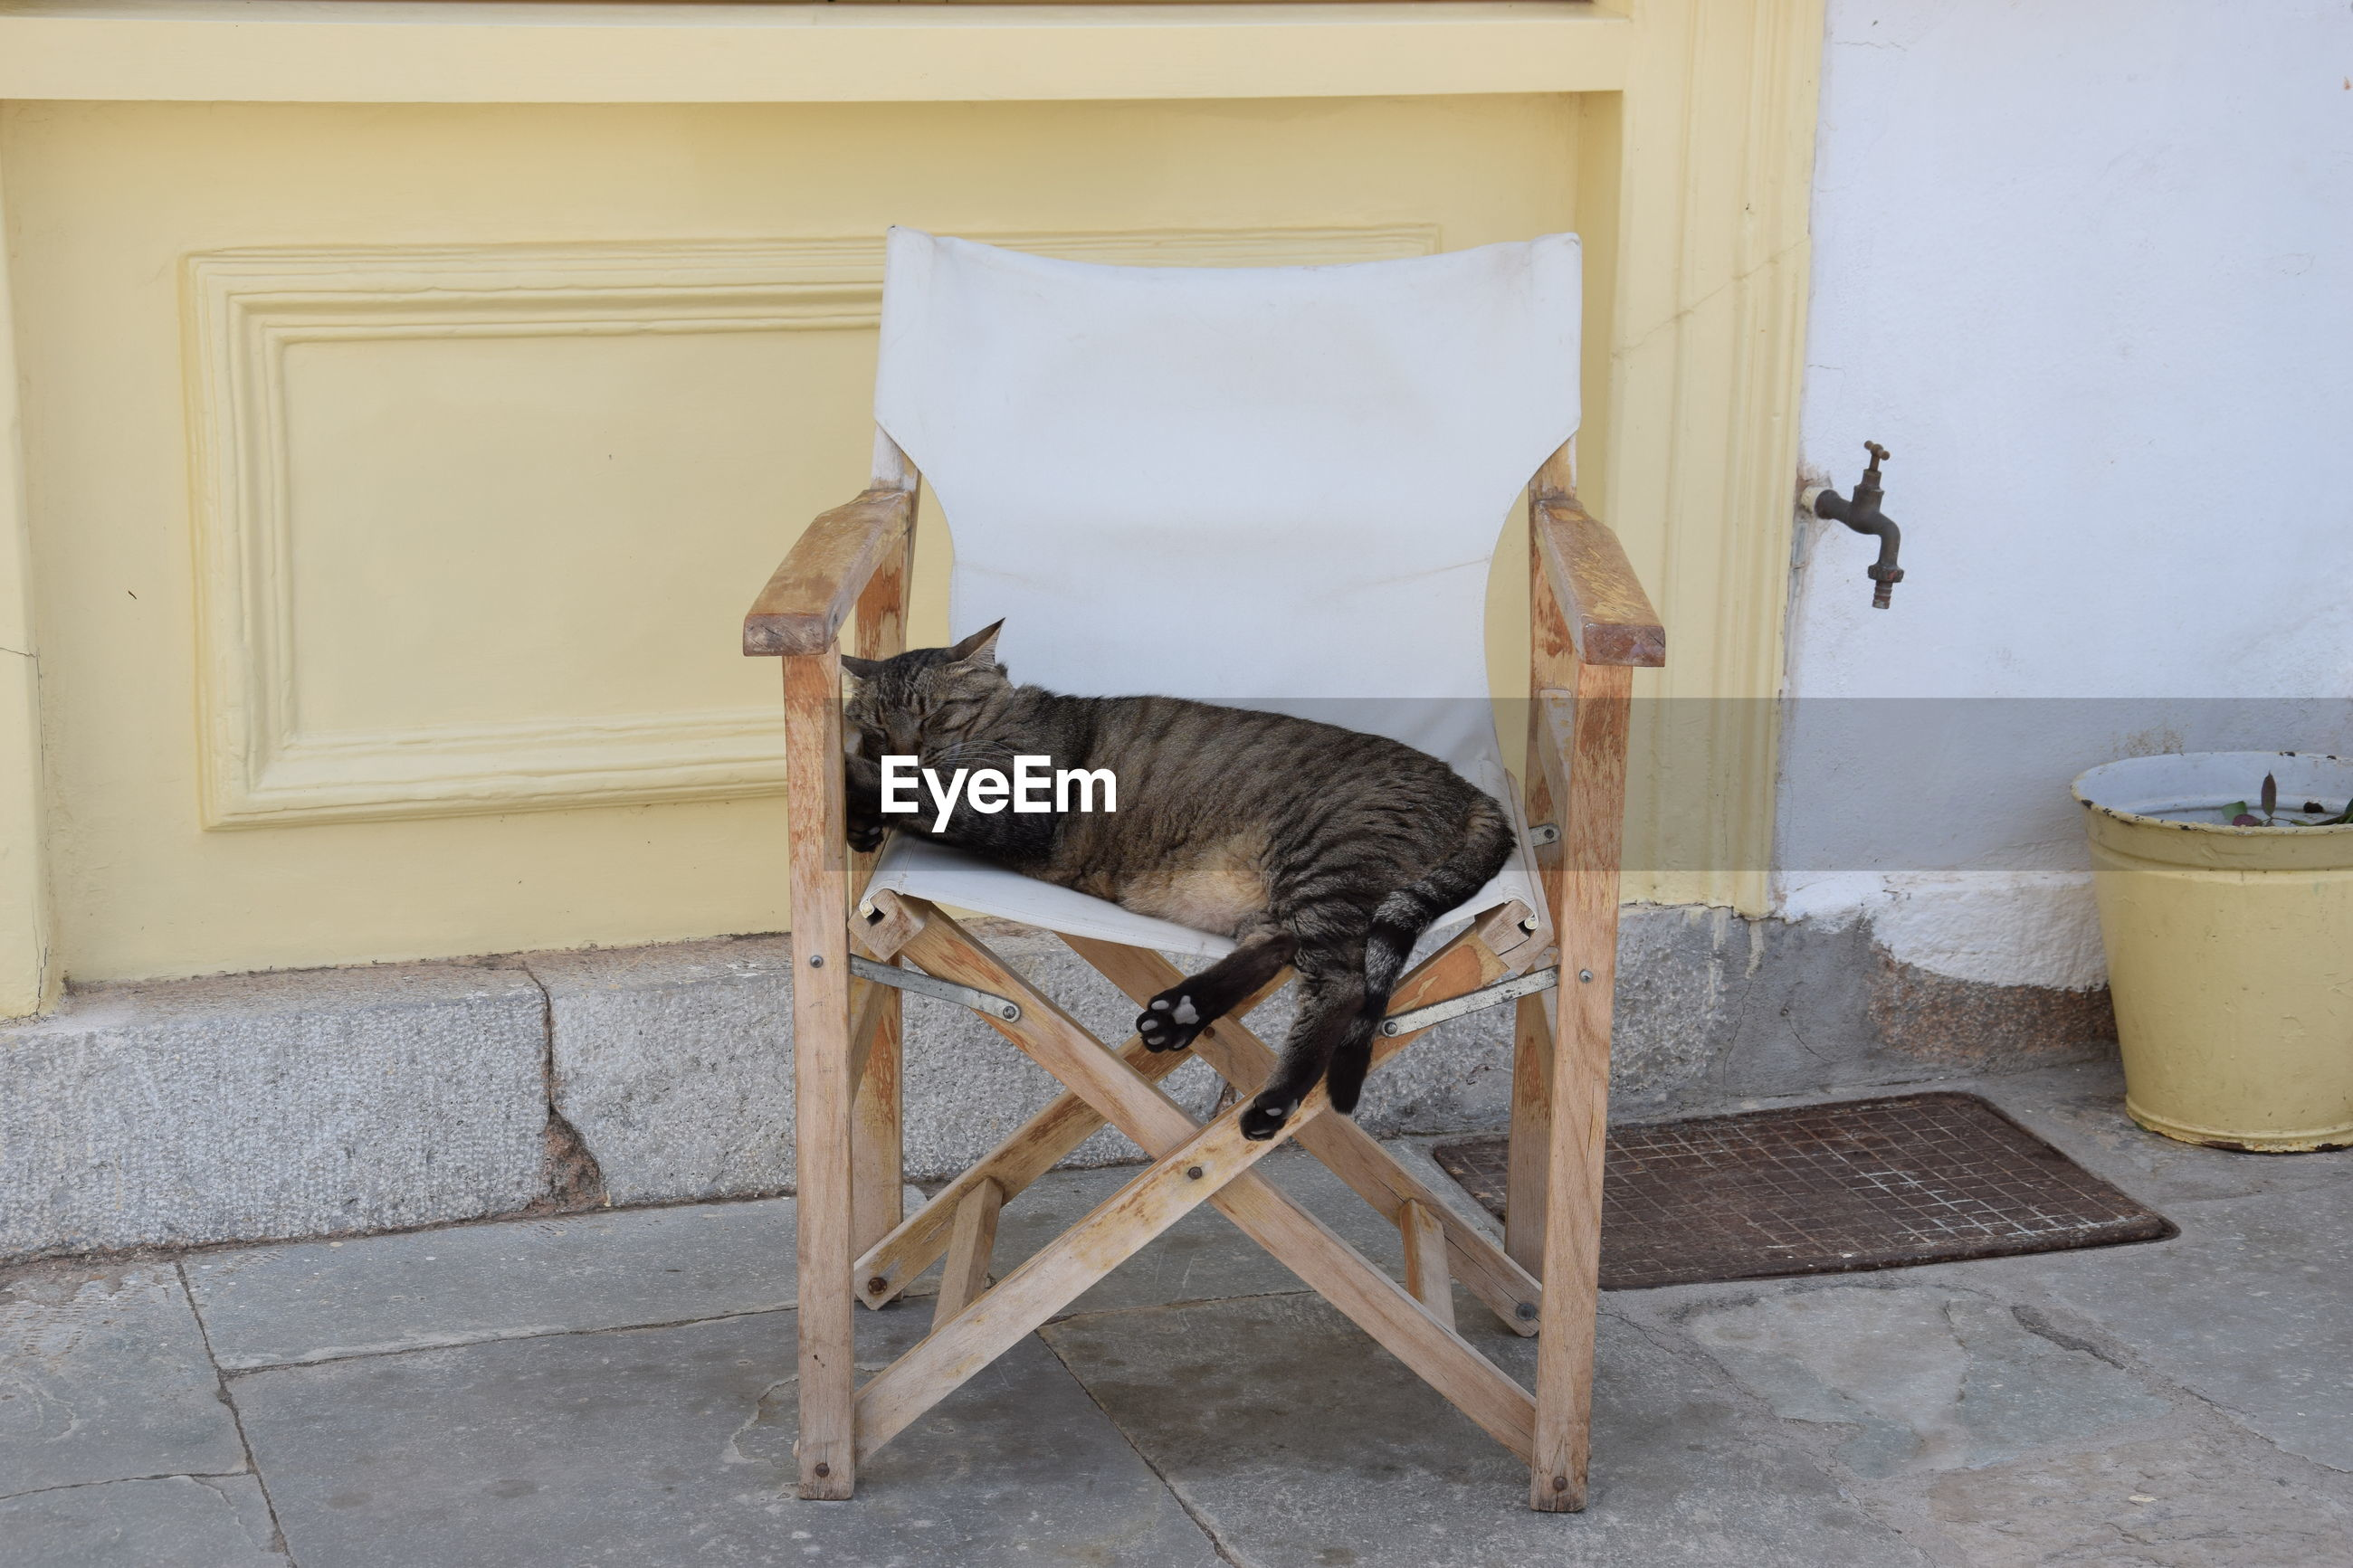 CAT ON CHAIR AGAINST BUILDING